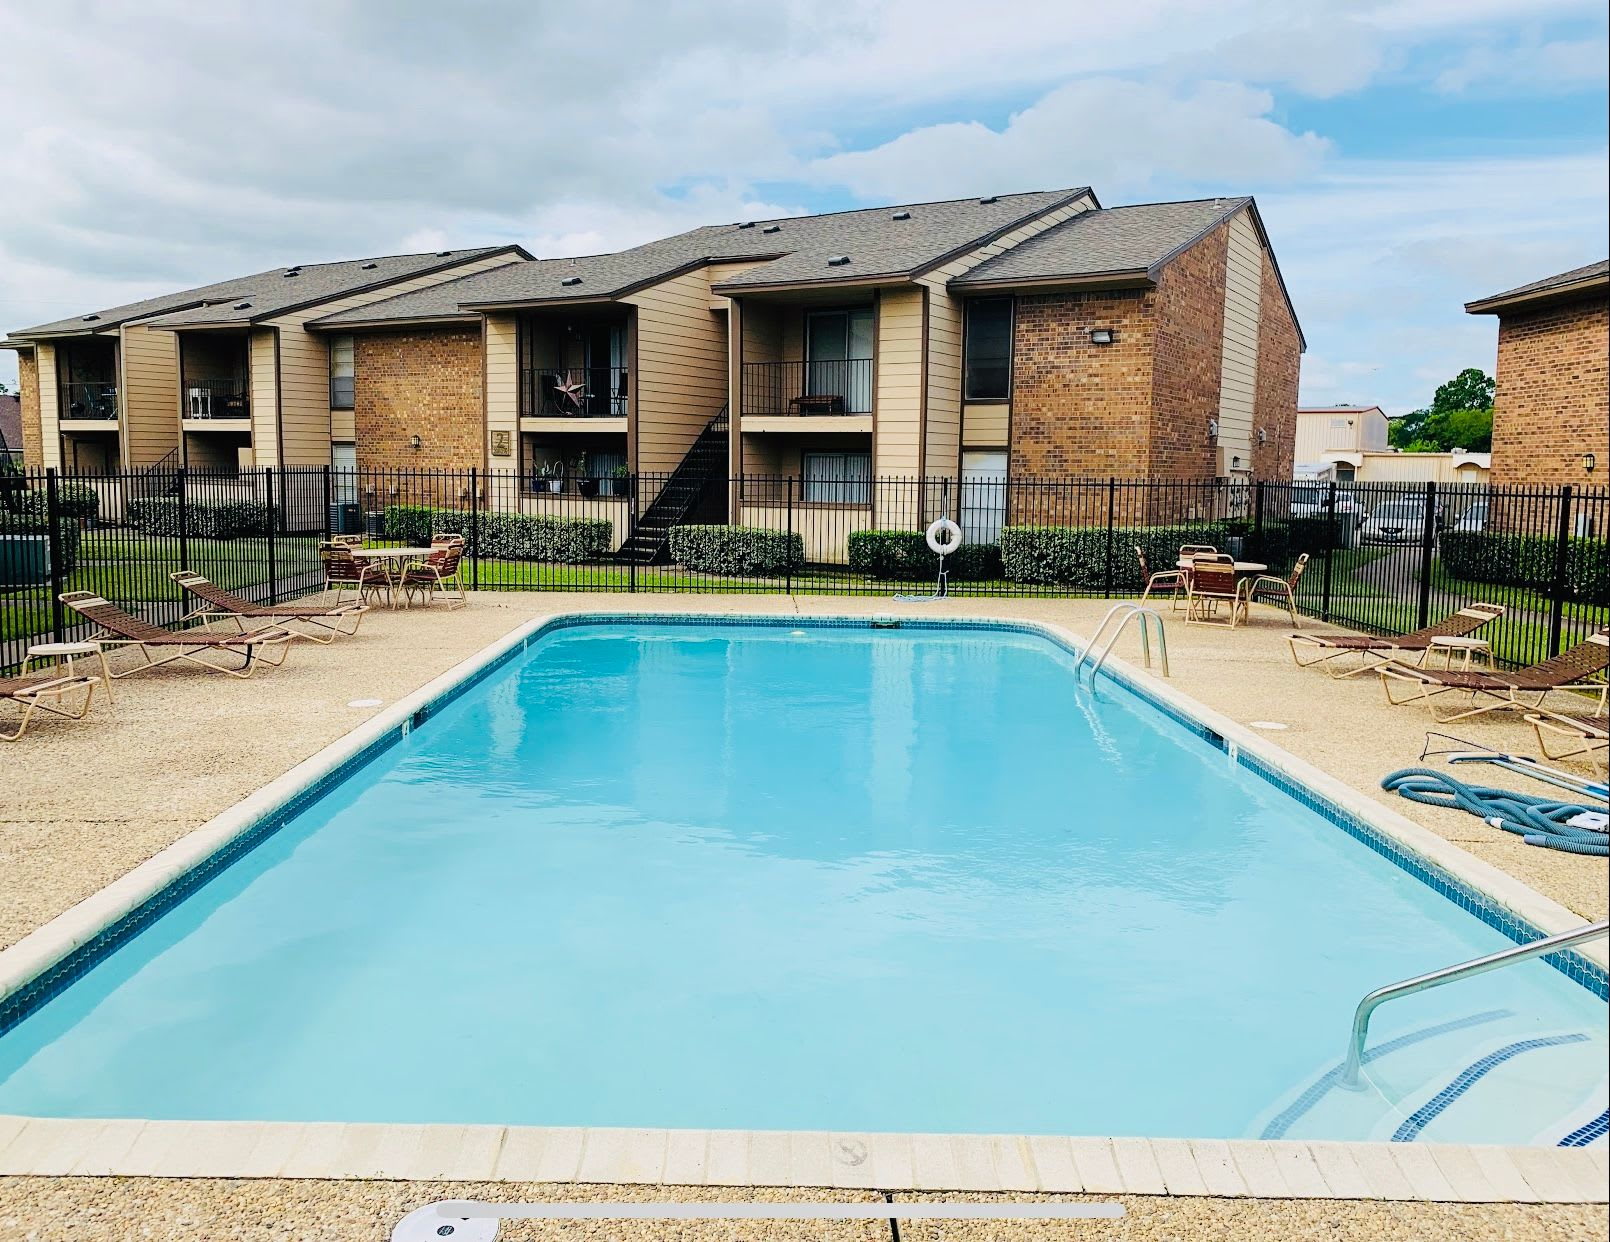 Carriage House Apartments in Nederland, Texas